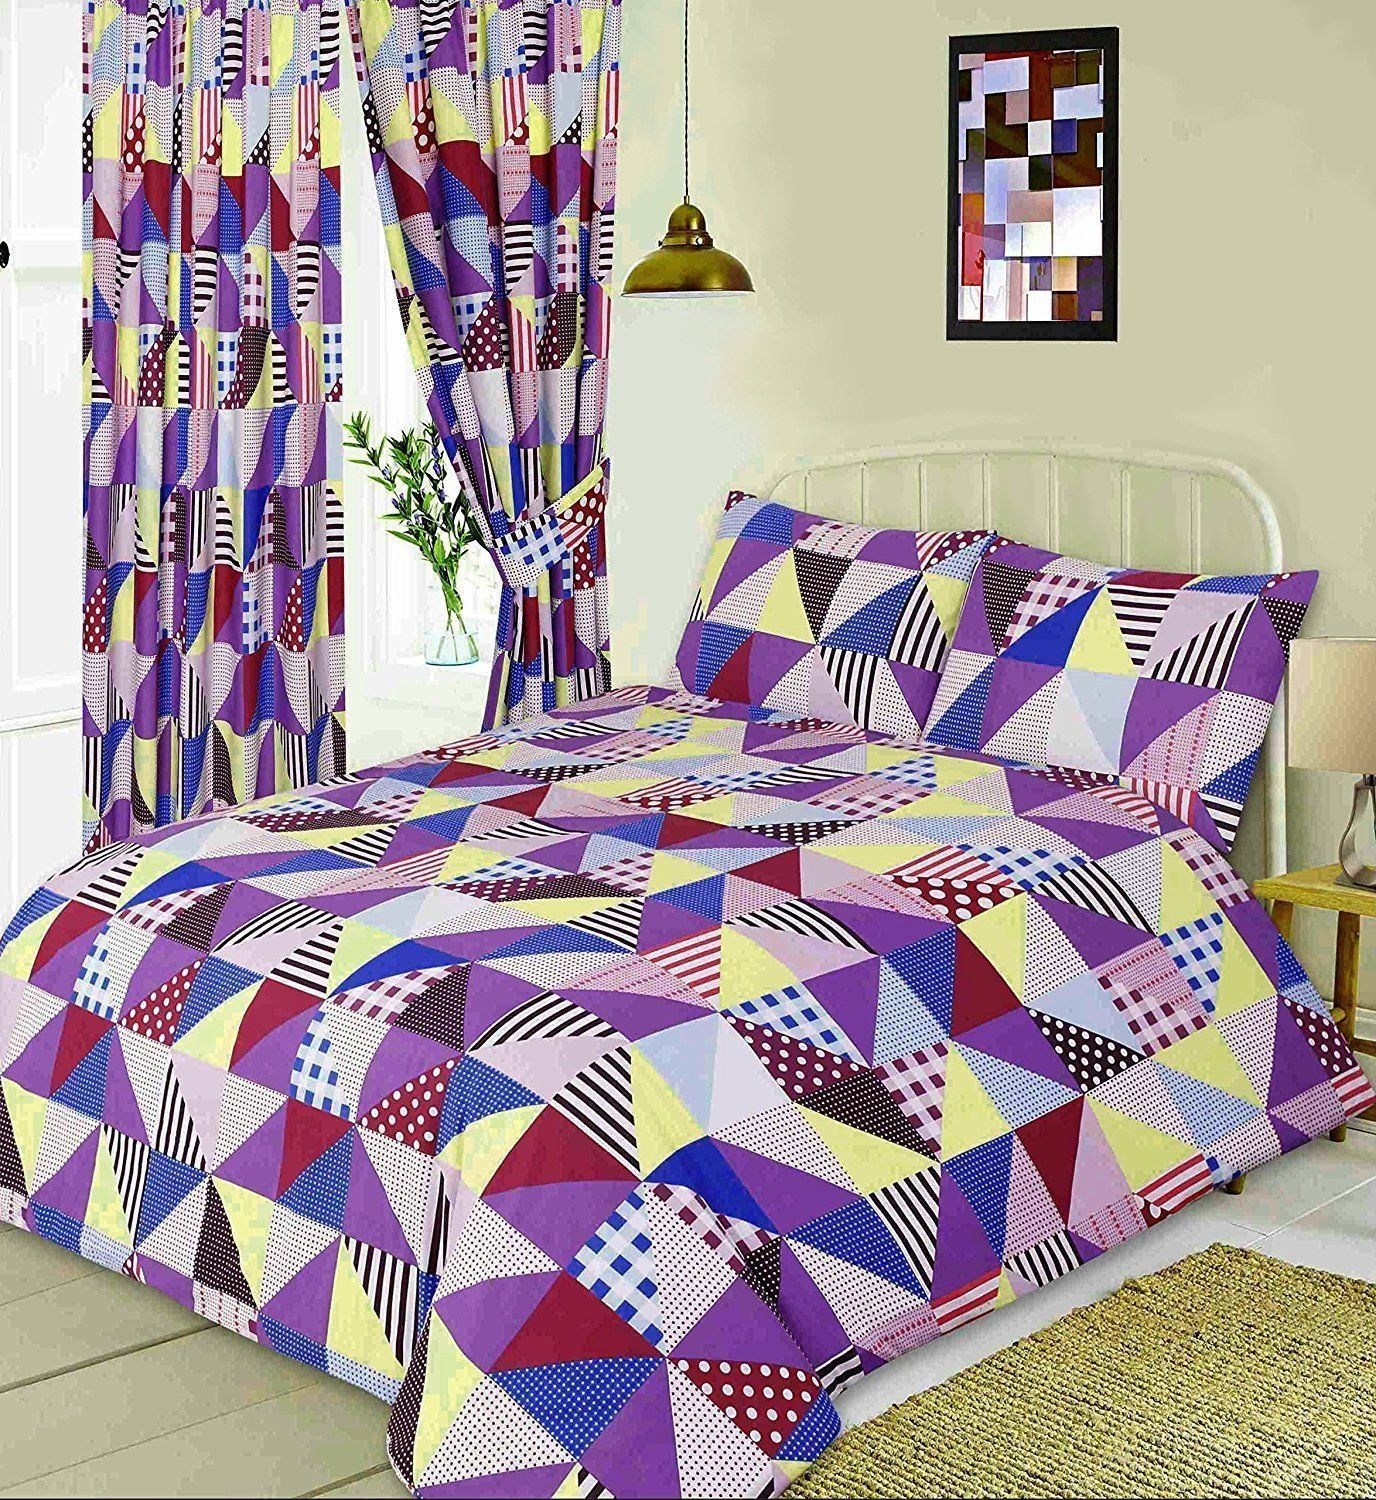 King Size Geometric Patchwork Design Purple, Blue & Yellow Duvet Cover & Matching Pillowcases